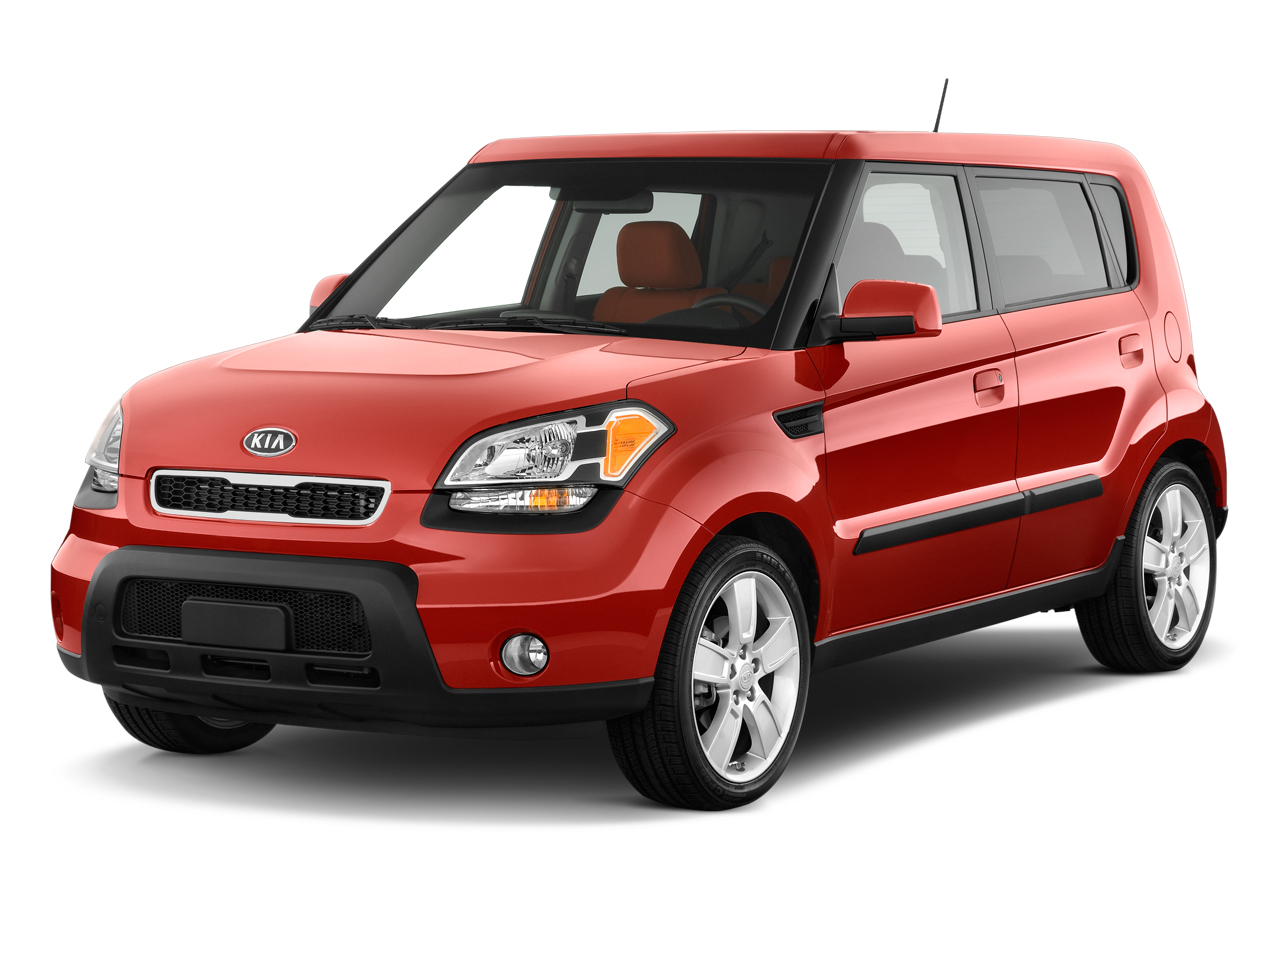 2011 kia soul review ratings specs prices and photos the car connection. Black Bedroom Furniture Sets. Home Design Ideas